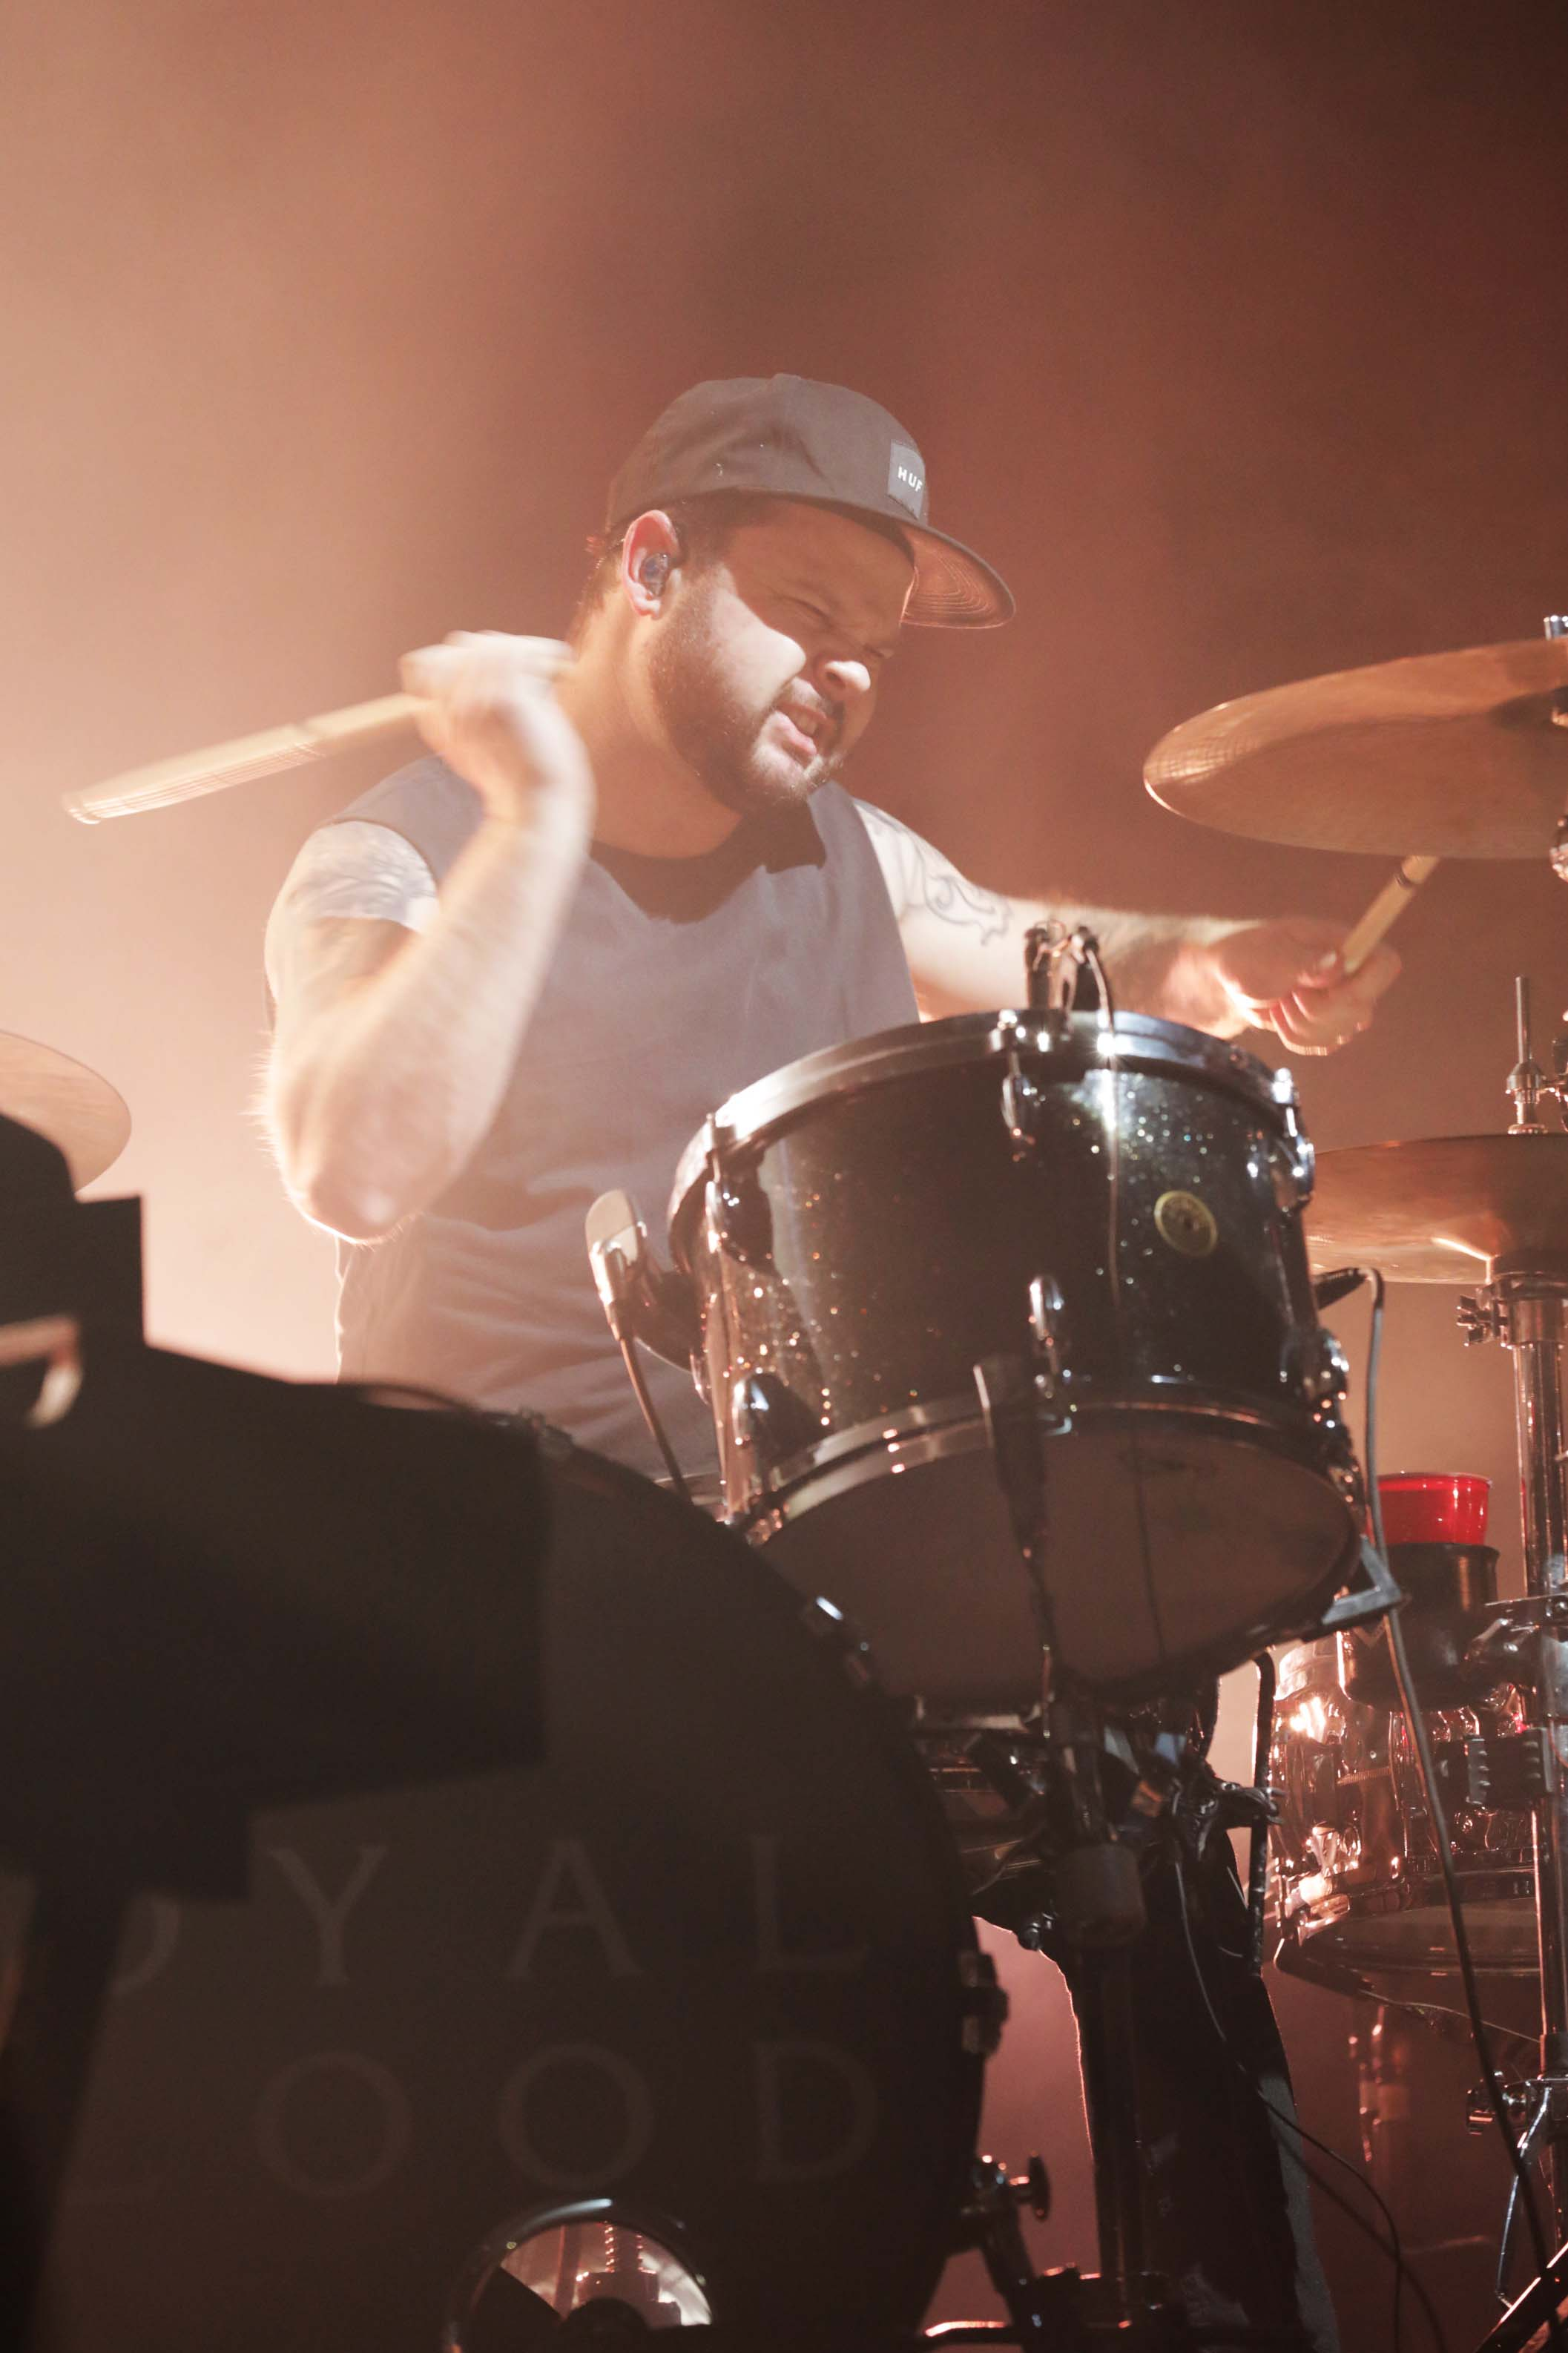 Ben Thatcher, drummer for Royal Blood, rock band from the U.K. Photo: Lmsorenson.net